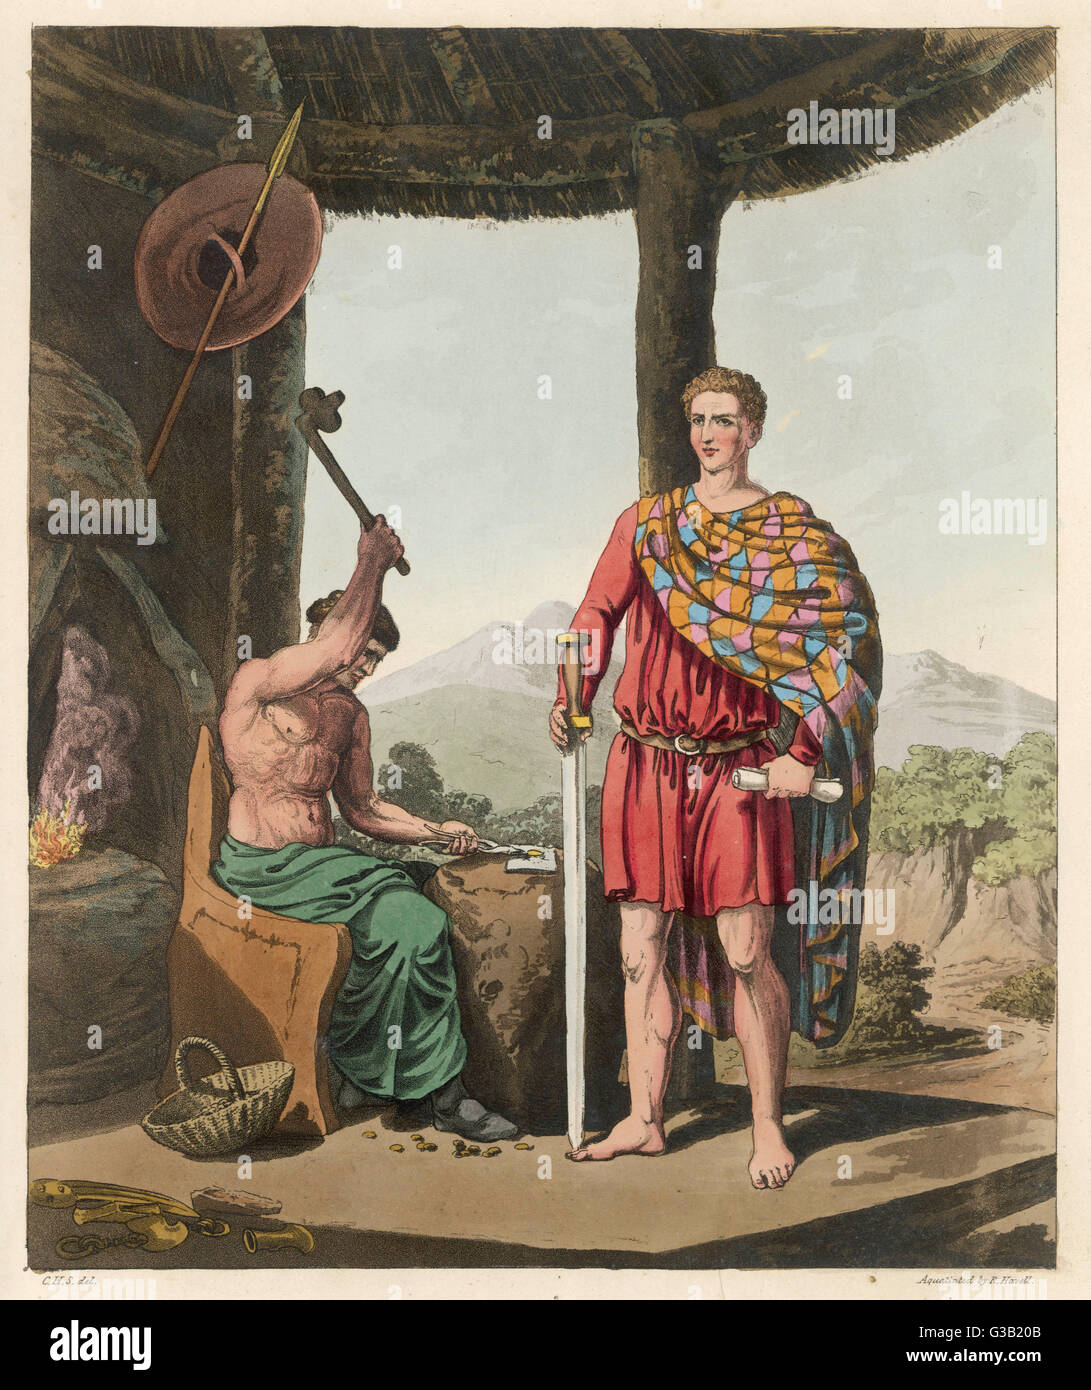 A Romanised Briton with his  sword, and a weapon-maker        Date: 3rd century - Stock Image